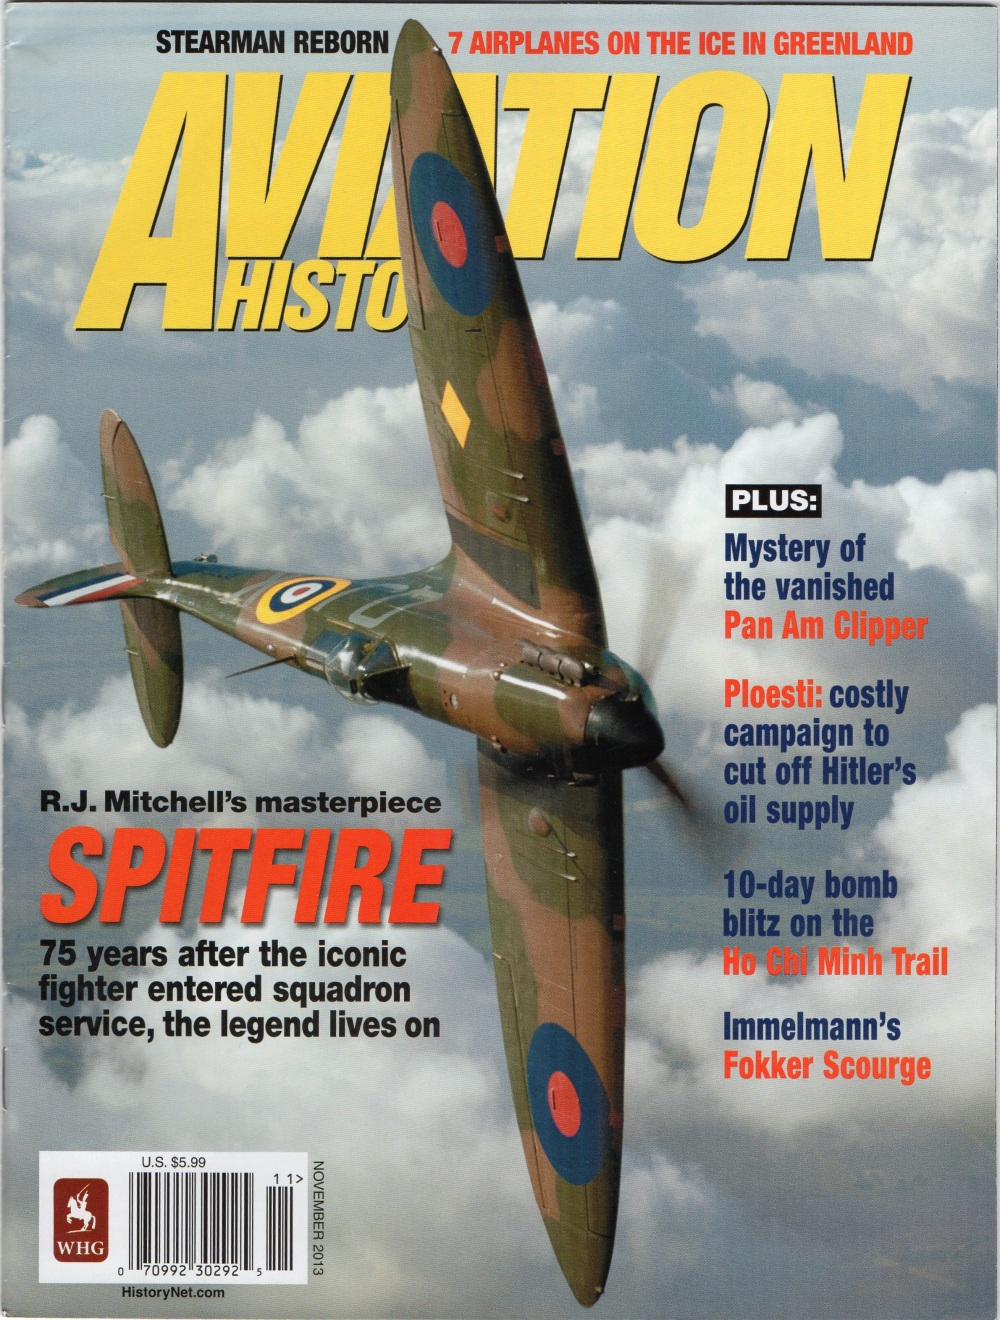 Hawaii Clipper story carried in National Magazine